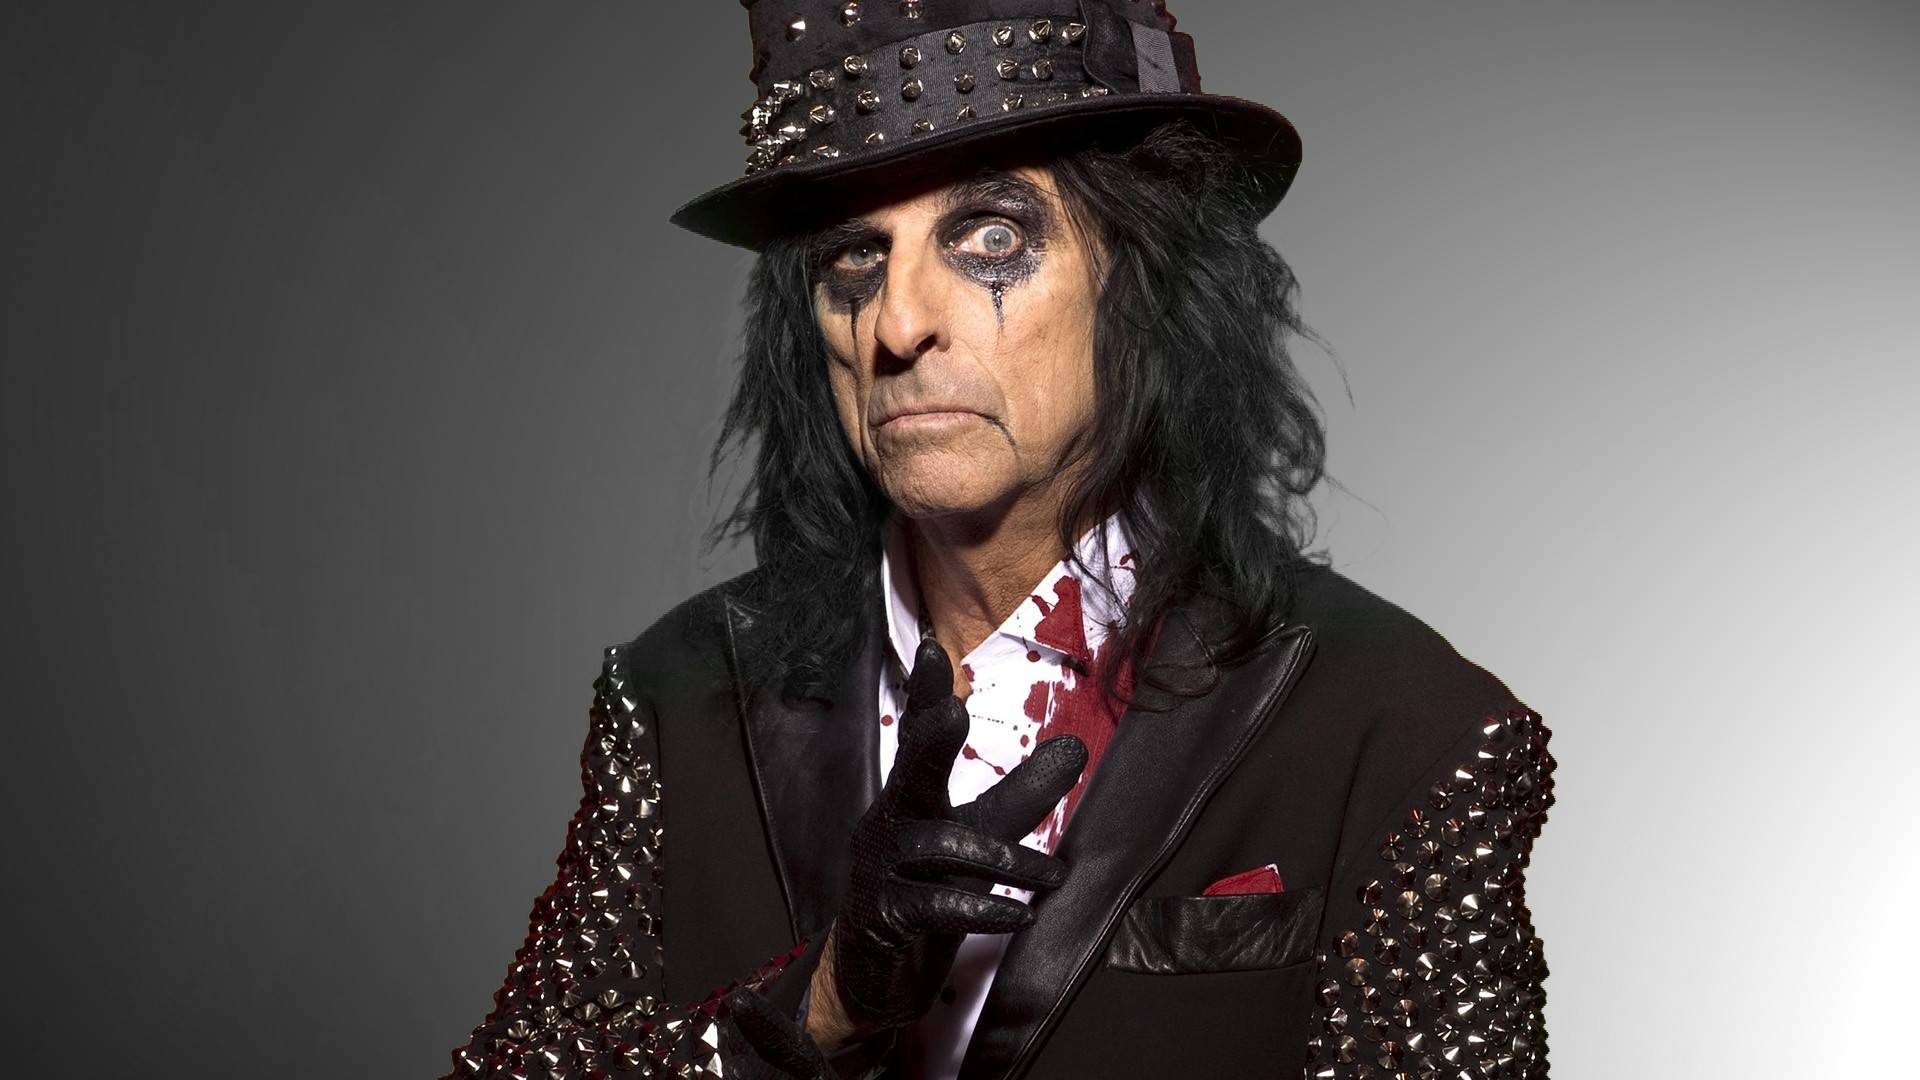 http://arts.blogs.pressdemocrat.com/files/2013/09/alice-cooper.jpg